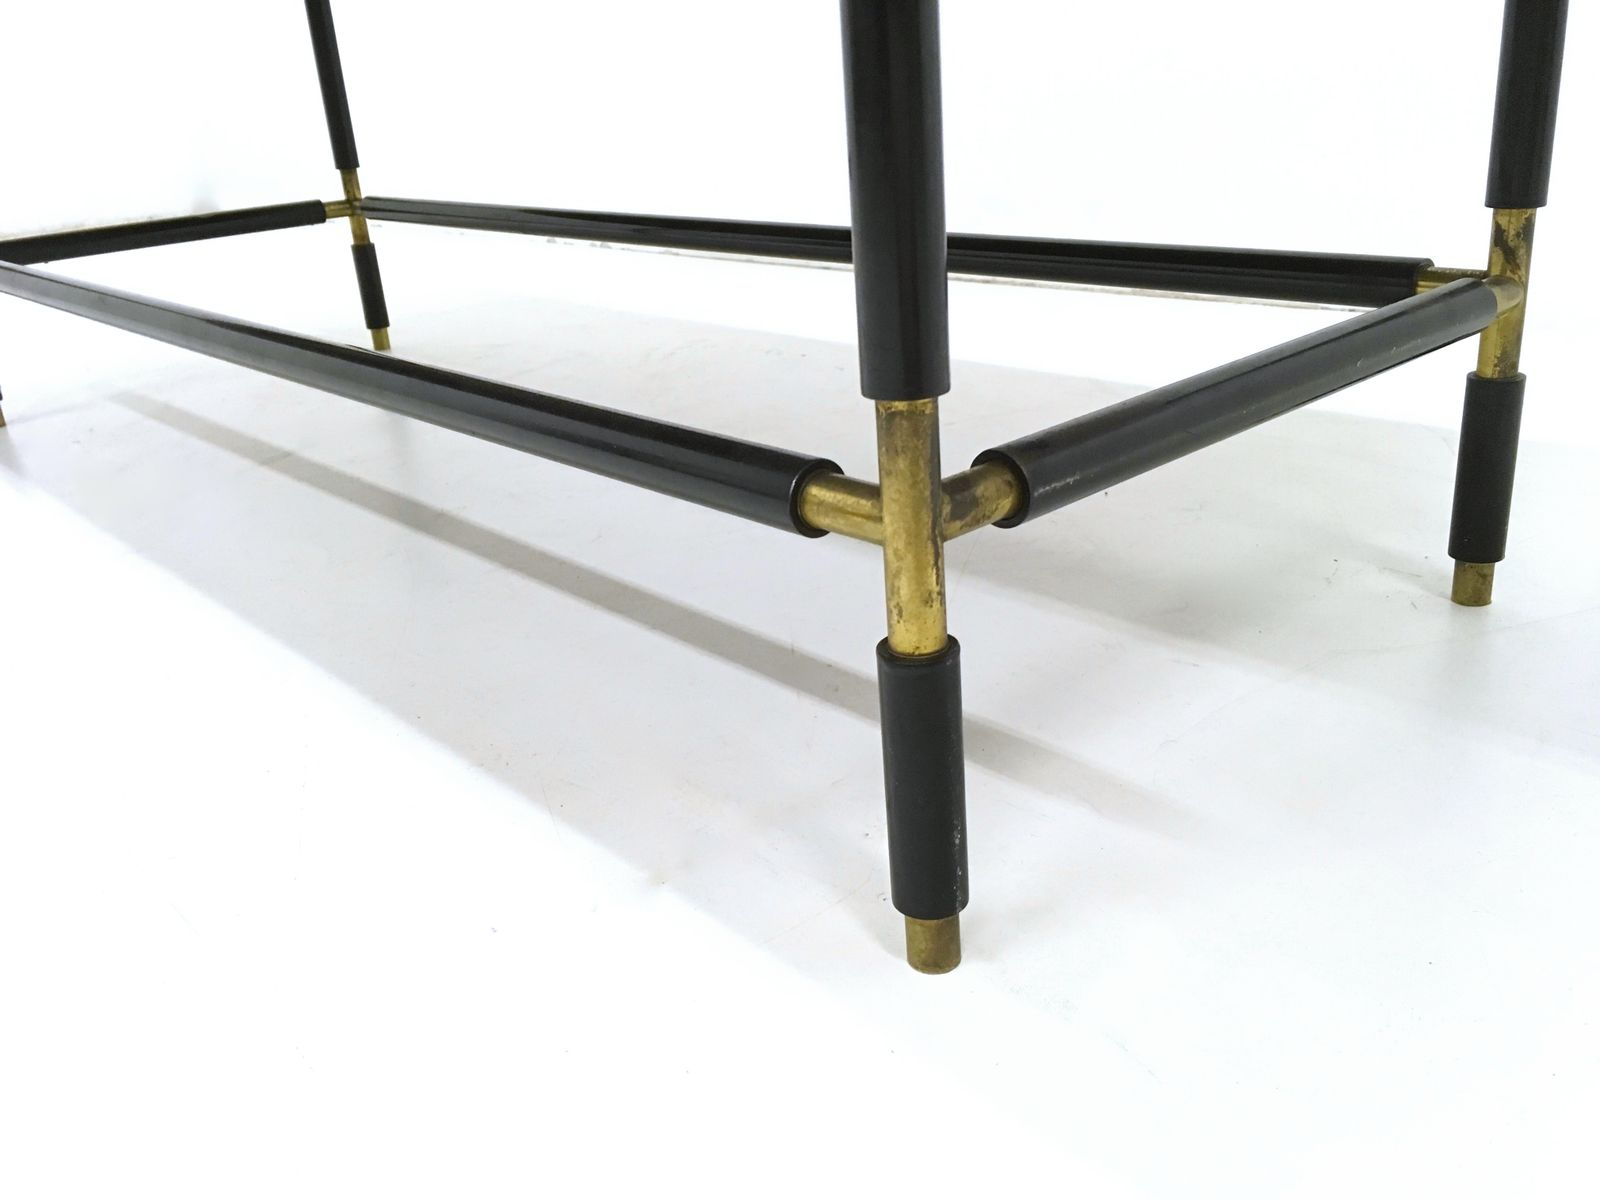 Coffee Table No 1736 by Fontana Arte 1950s for sale at Pamono